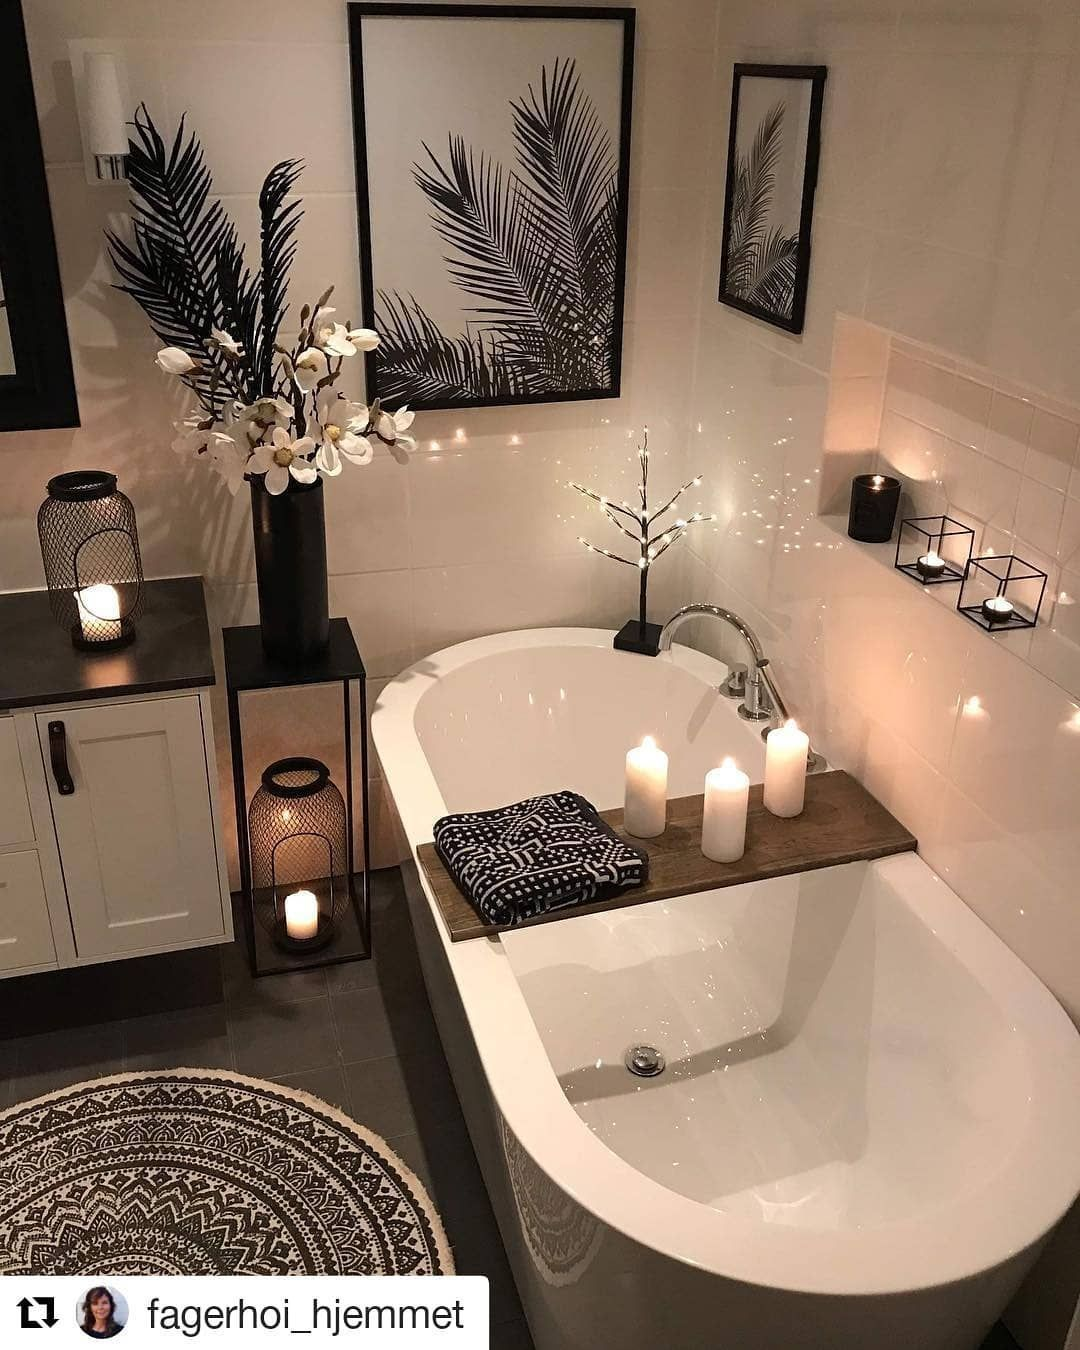 O Tak To Idealny Plan Na Wieczor Prawda Fot Fagerhoi Hjemmet Homebook Homeandesign Homedecor Ho Bathroom Decor Contemporary Bathrooms Home Decor